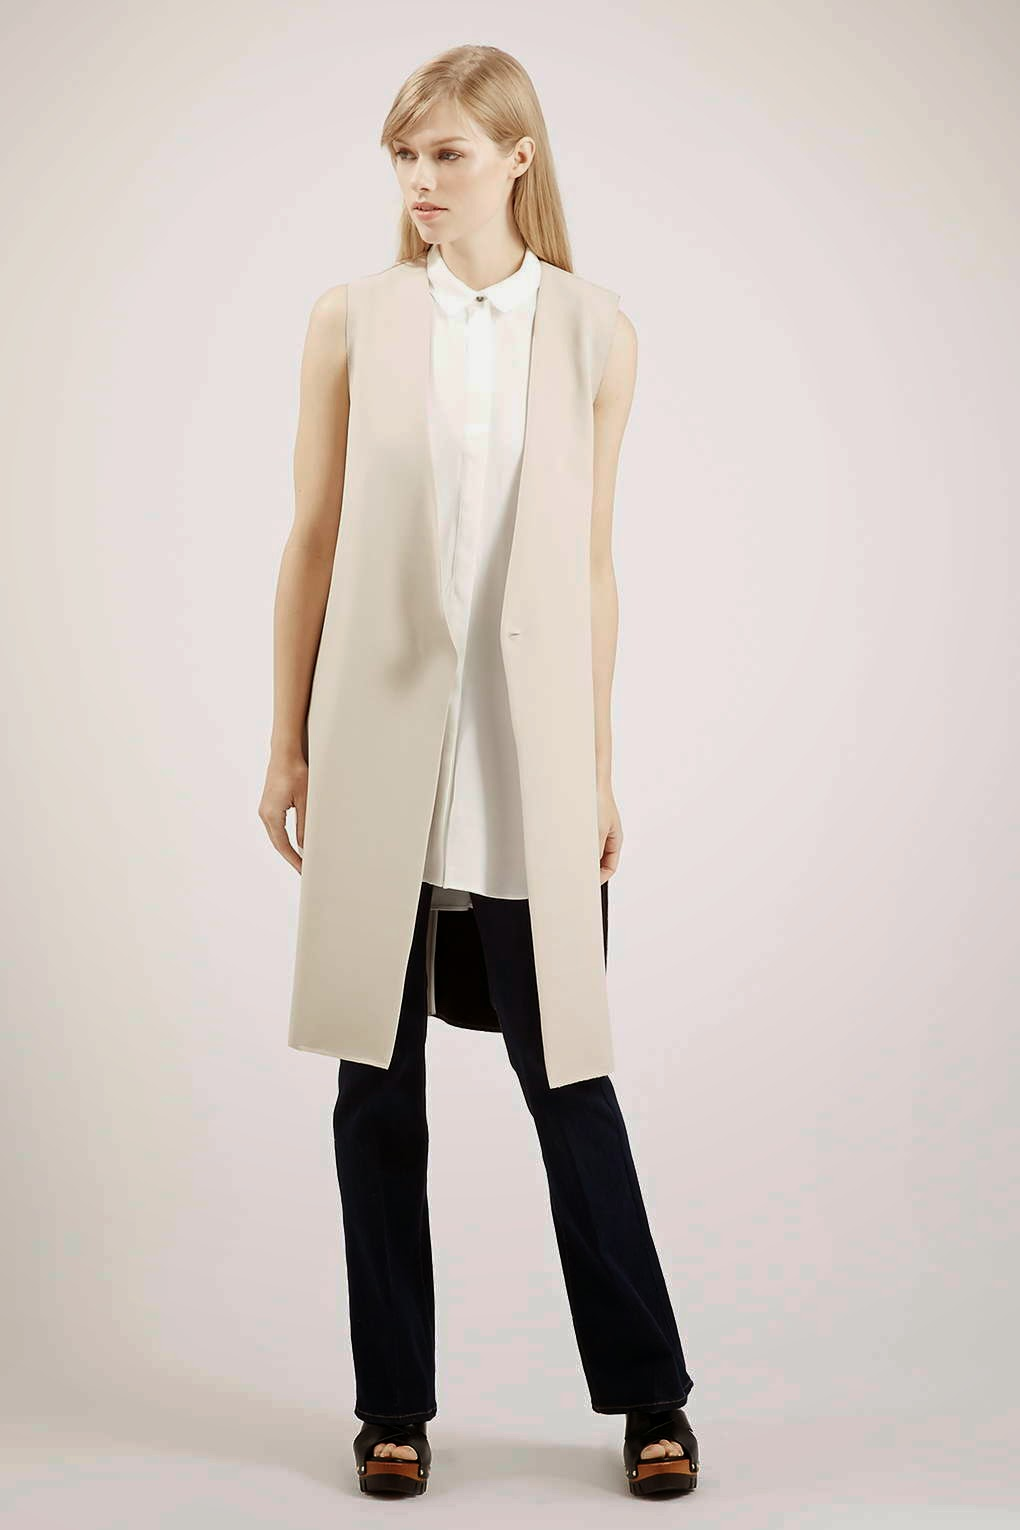 cream long waistcoat, sleeveless cream jacket,